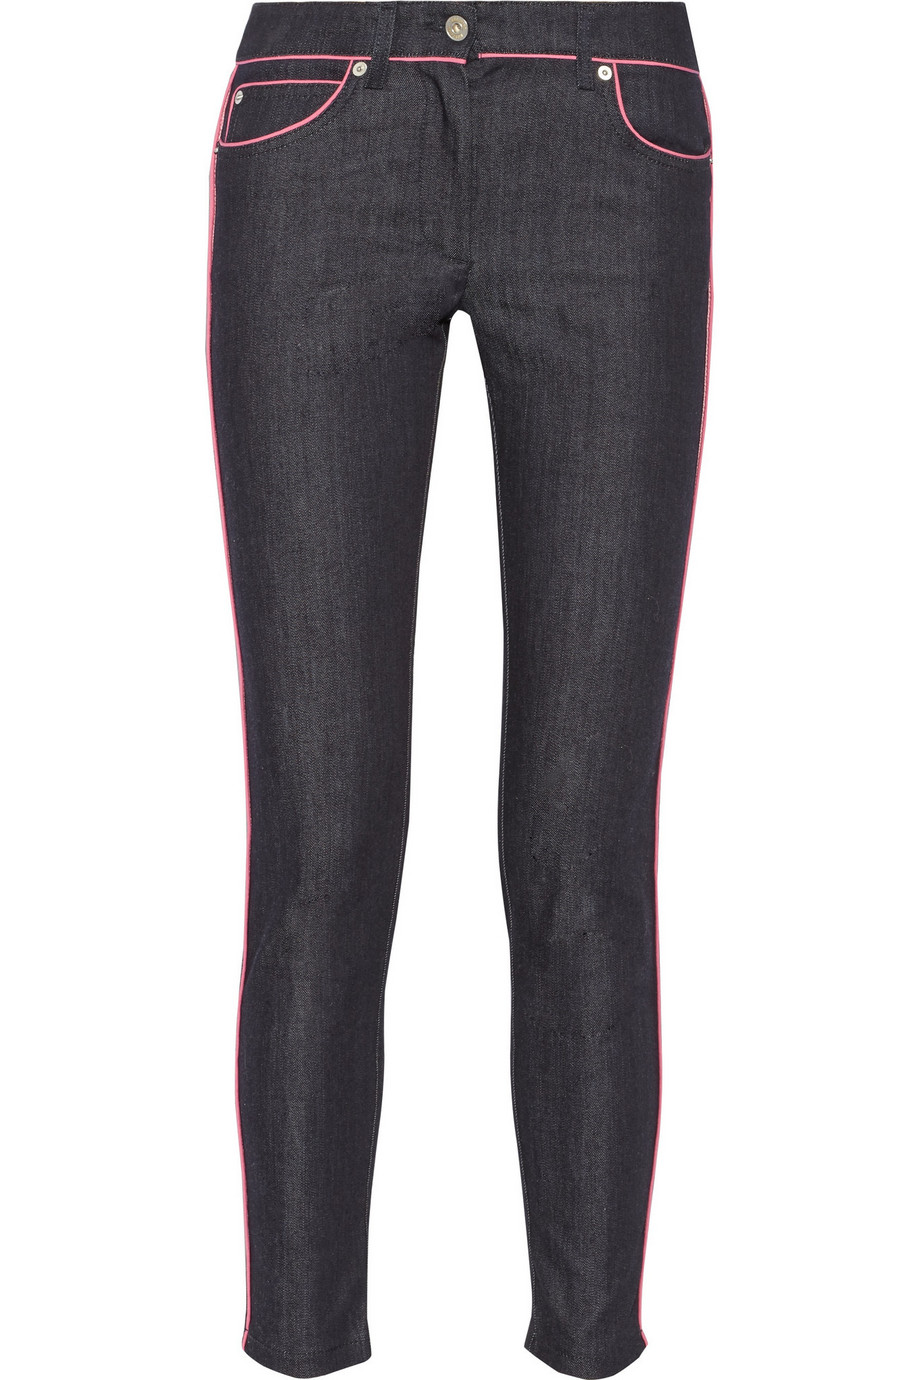 Moschino Mid-Rise Skinny Jeans, Mid Denim, Women's, Size: 42